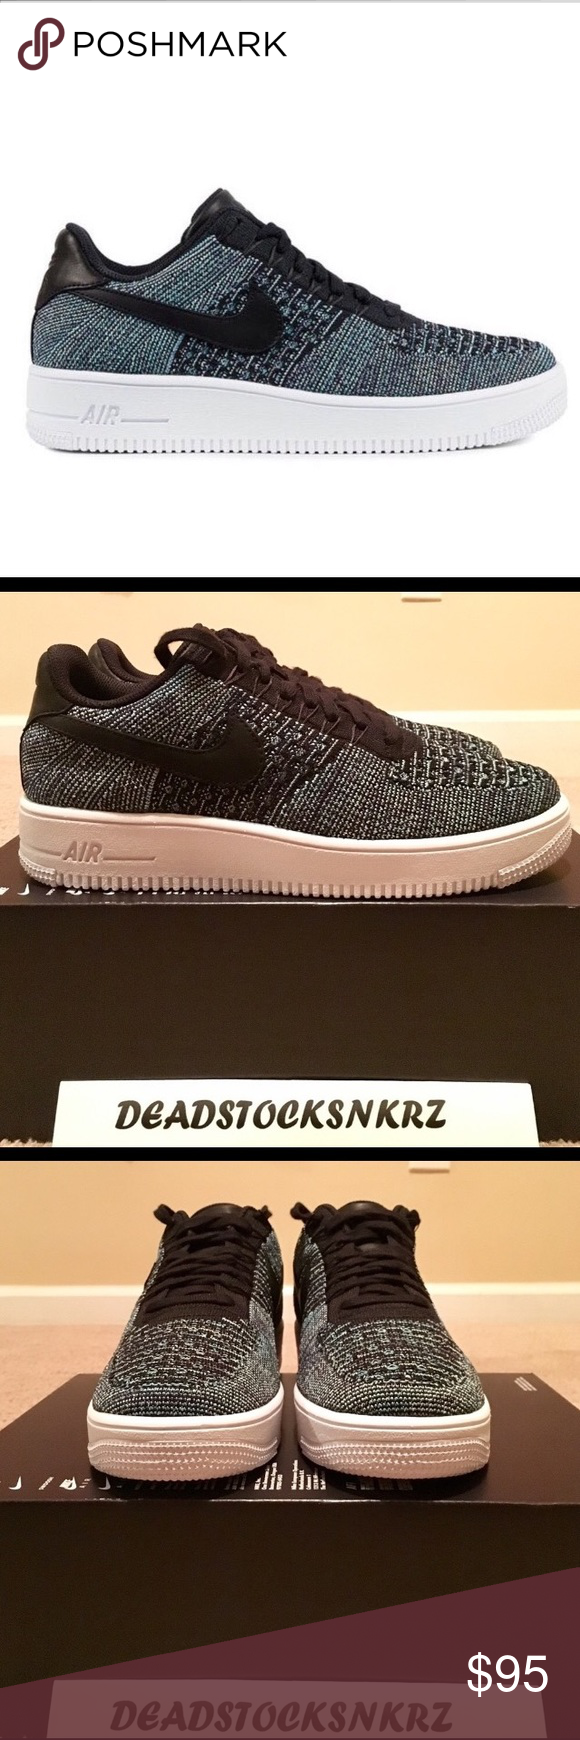 Nike Air Force 1 Ultra Flyknit Low QS RESTOCKED!! ColorVapor